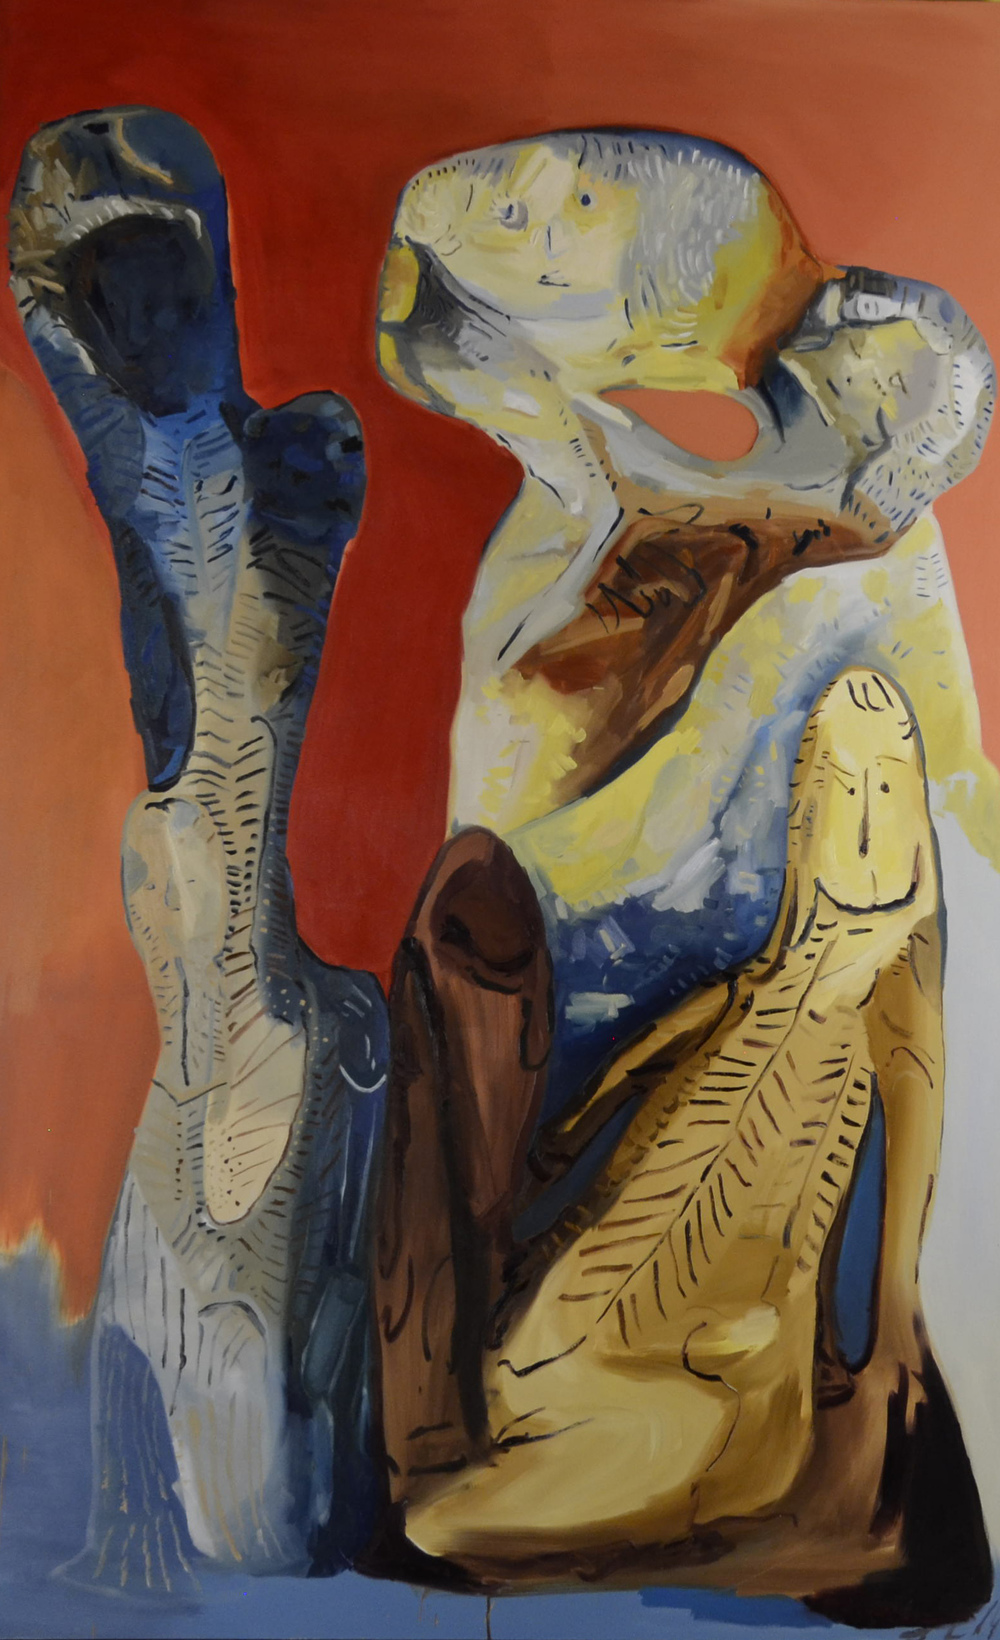 Clustered Figures in a Space, oil on canvas, 60x120 inches.